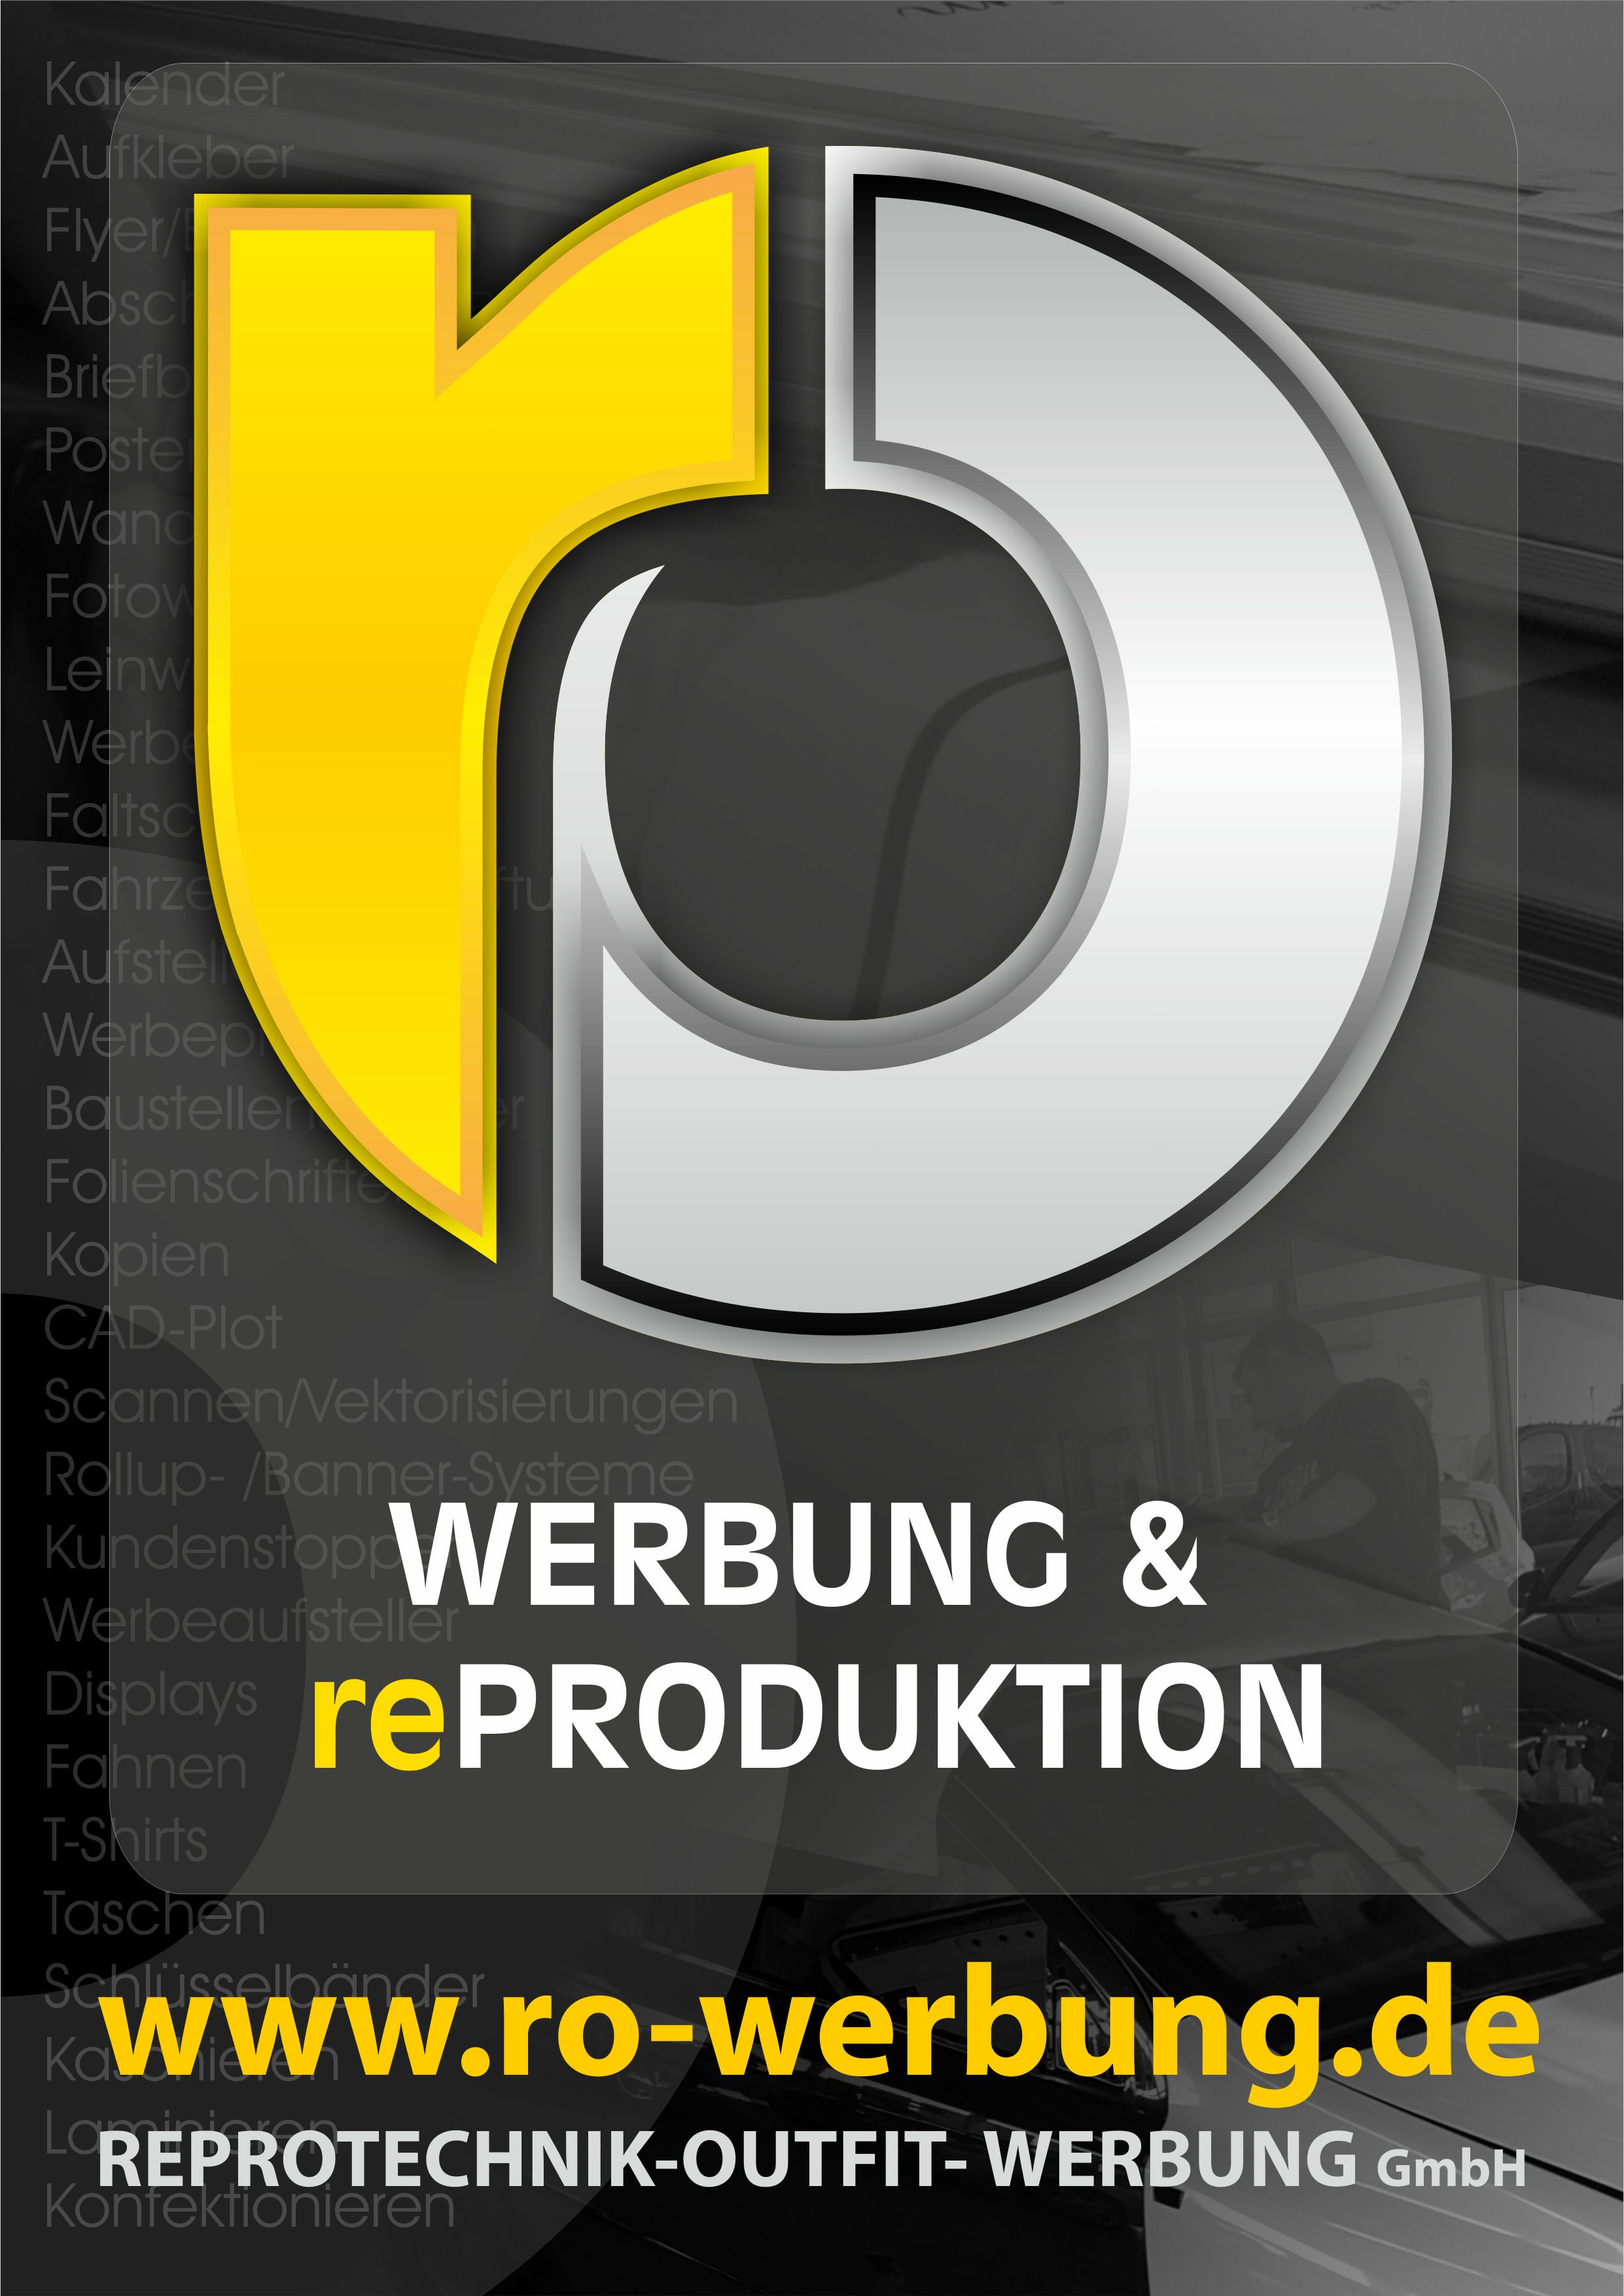 Reprotechnik Outfit Werbung GmbH